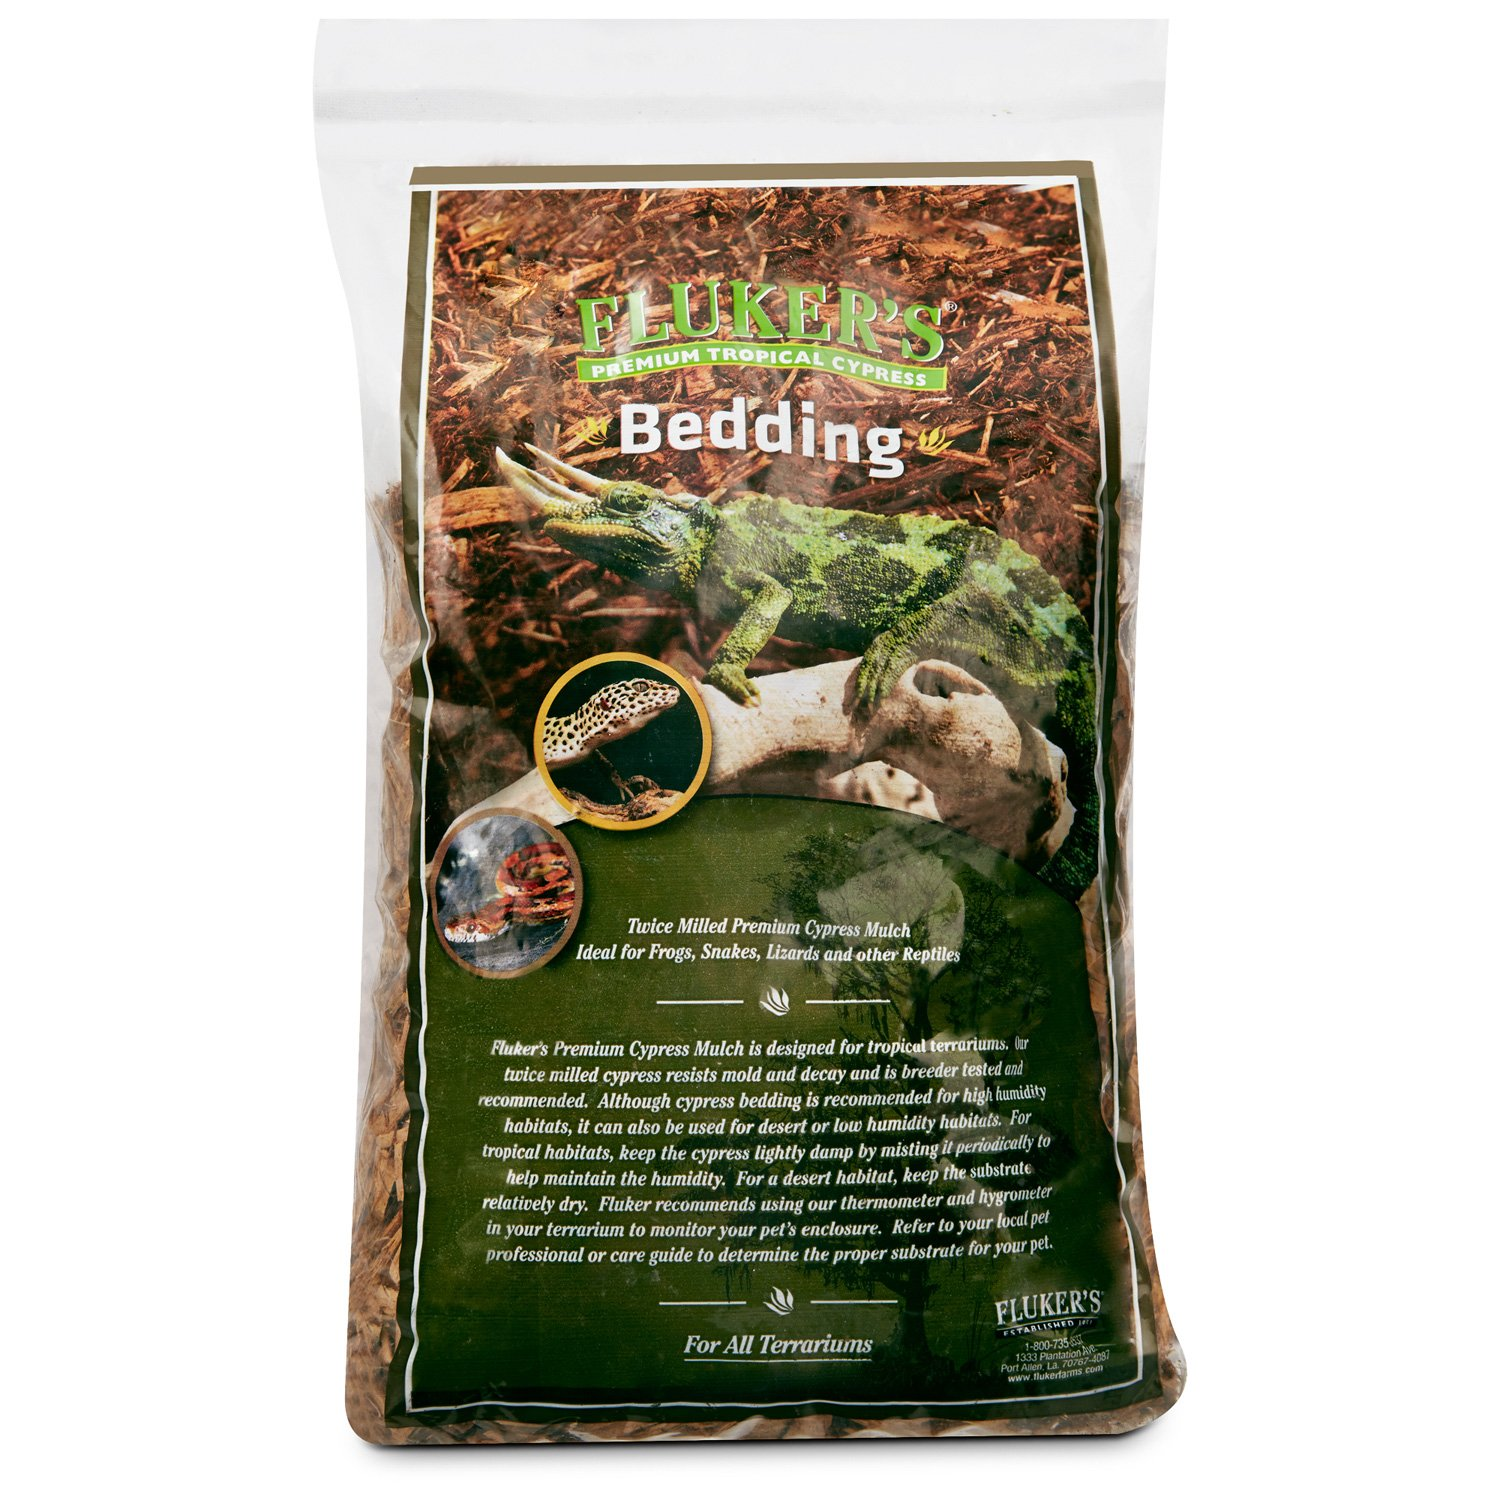 Fluker's Tropical Cypress Bedding Reptile Substrate